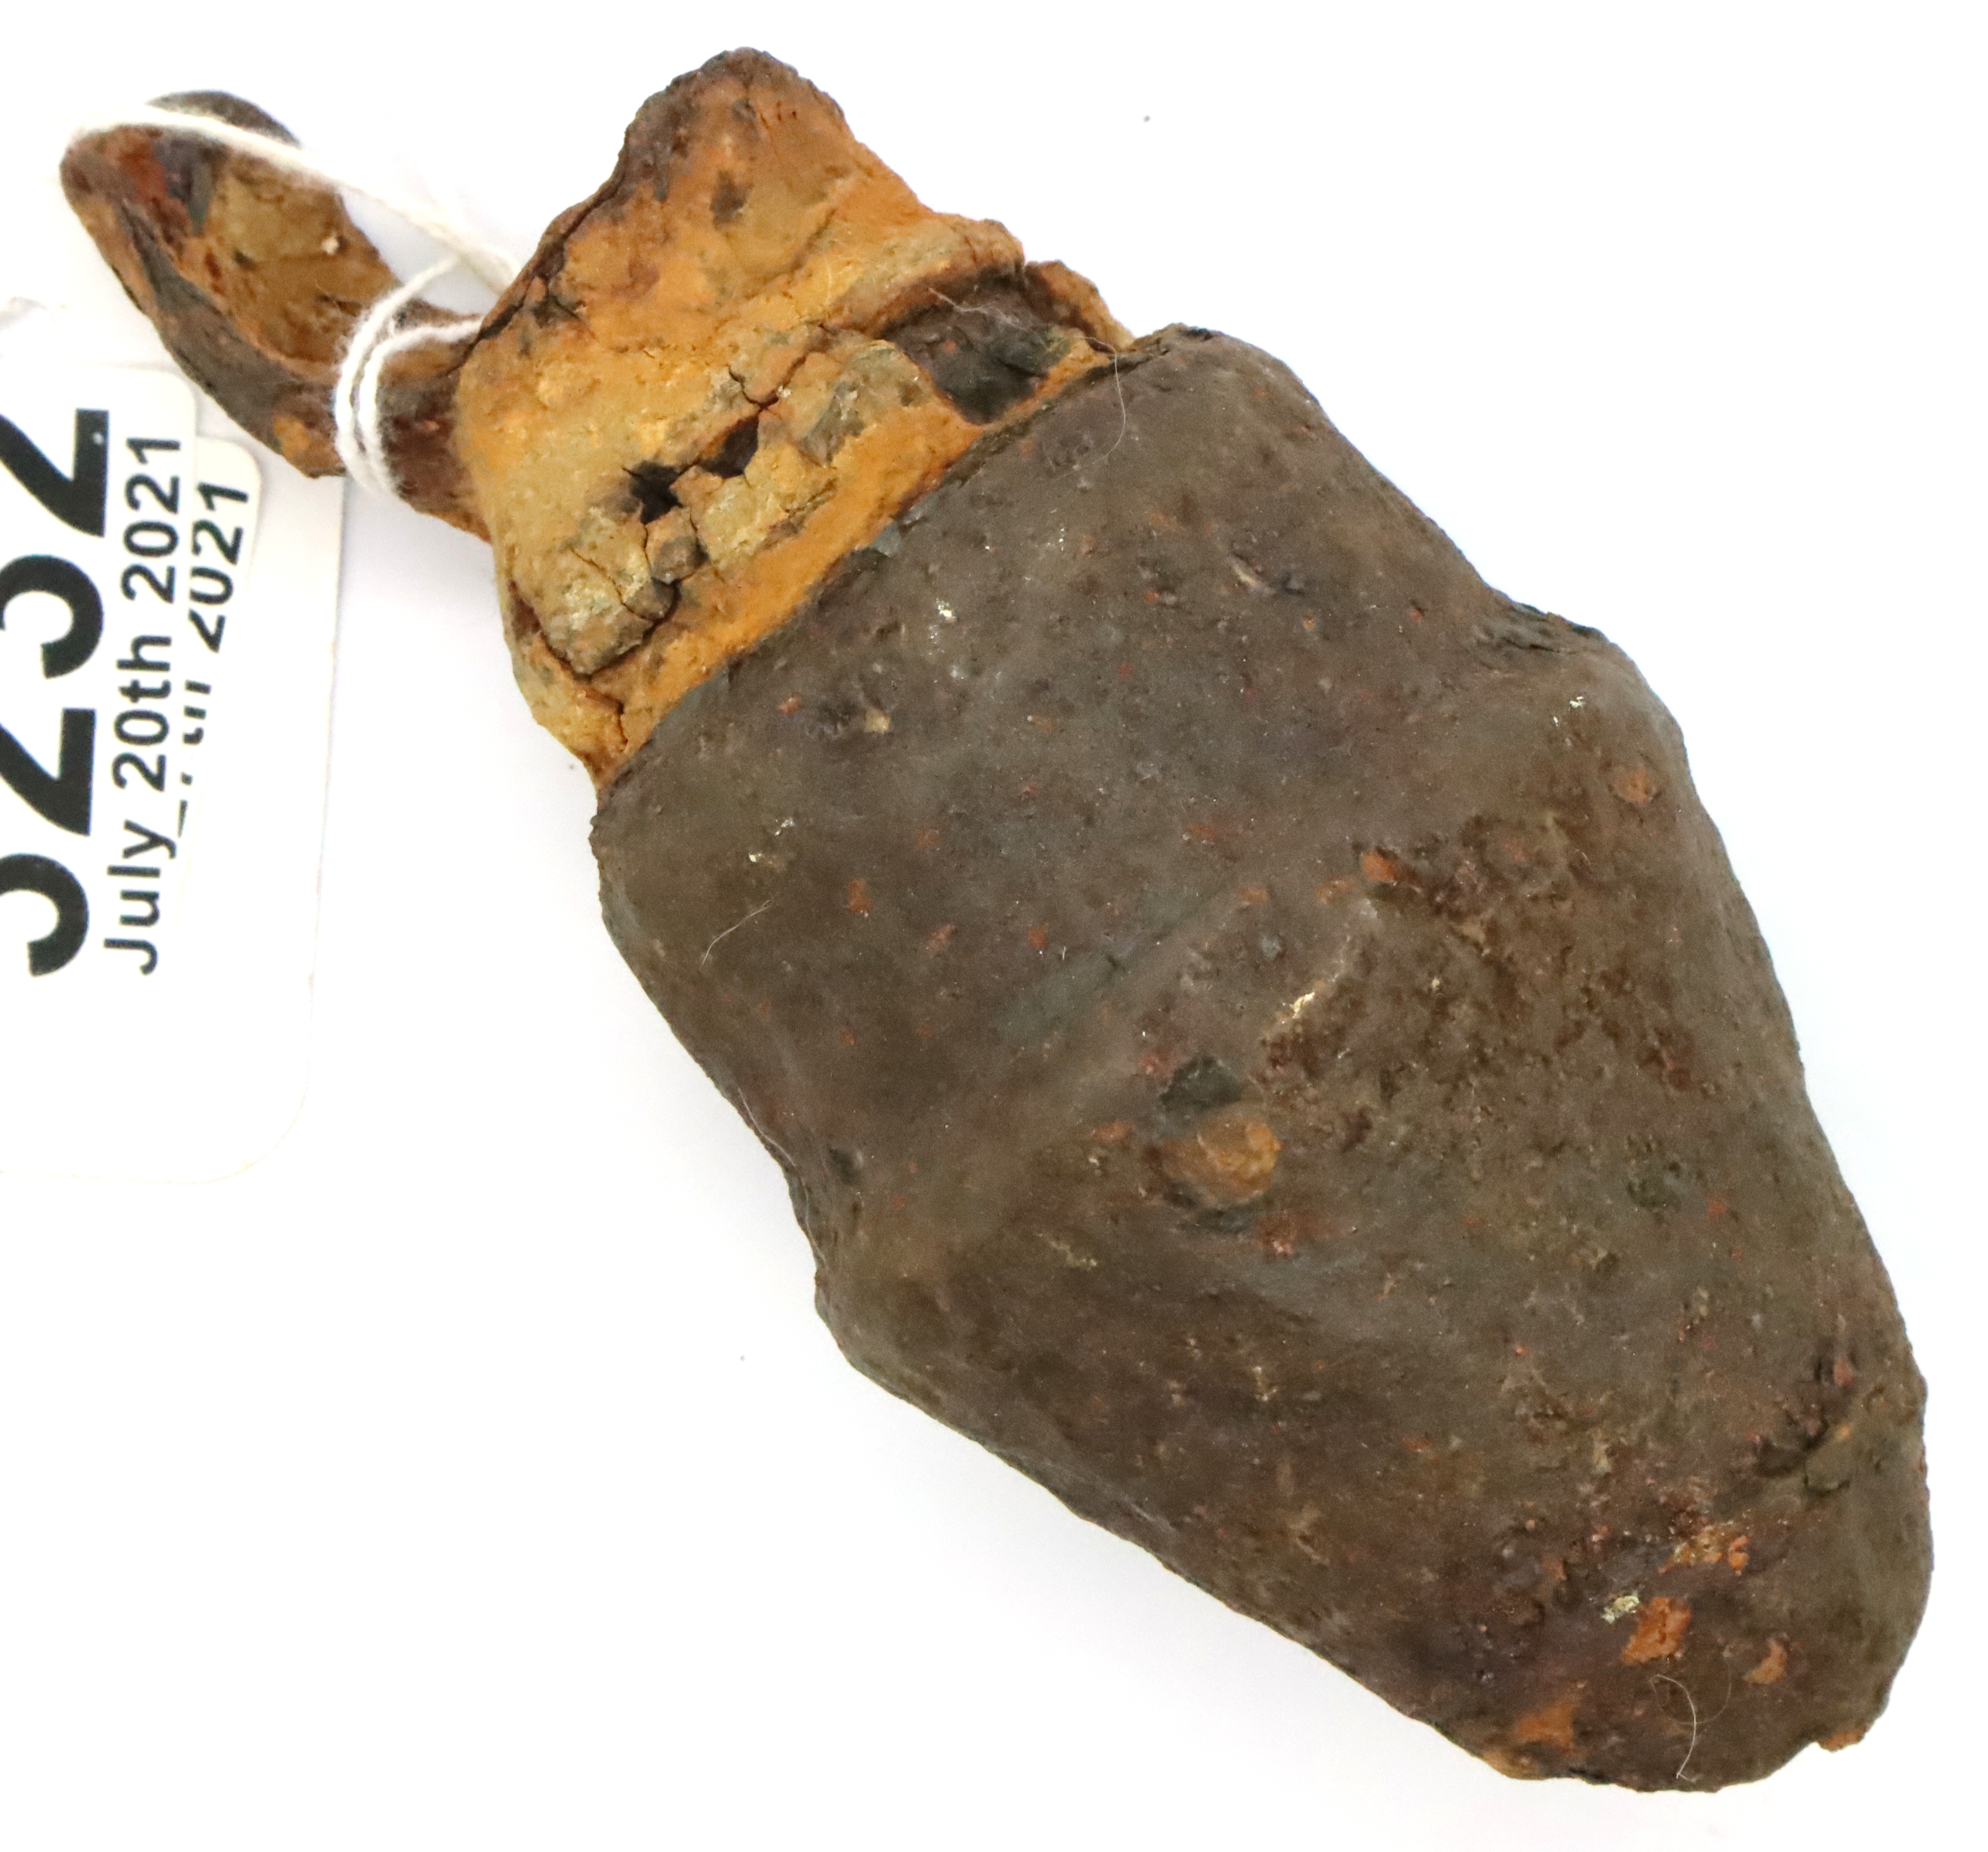 WWI relic bomb fuse, found east of Ypres. P&P Group 2 (£18+VAT for the first lot and £3+VAT for